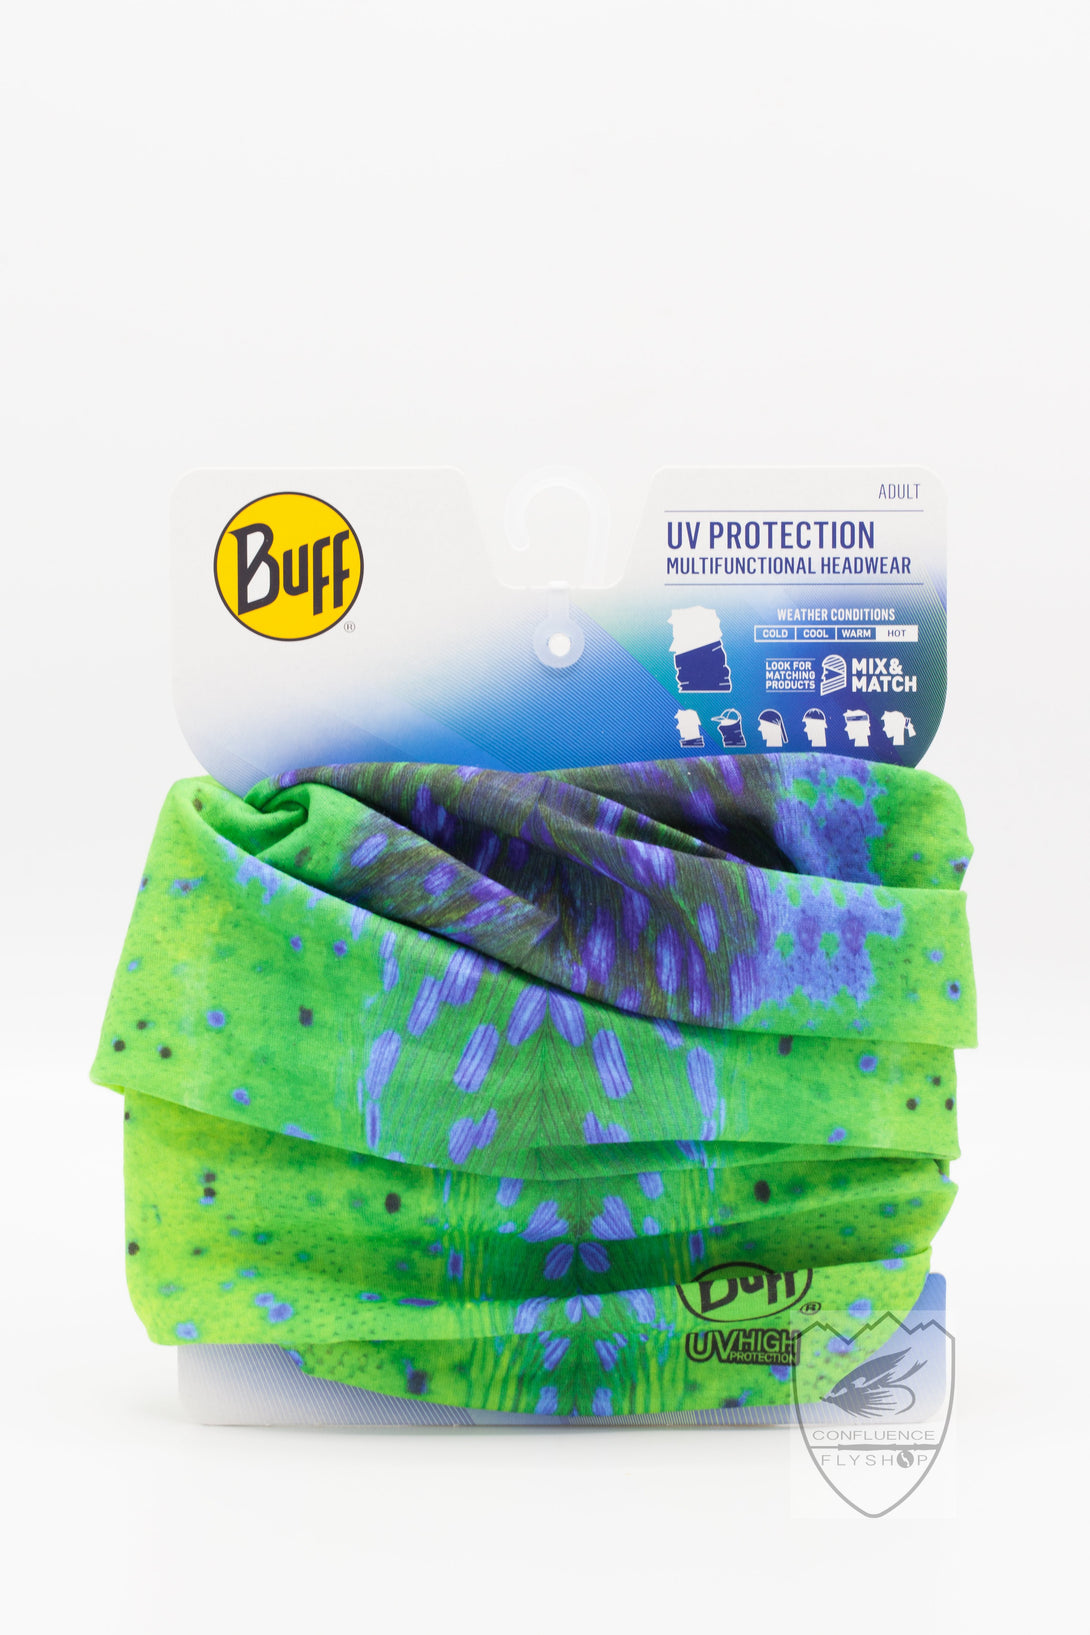 Buff UV Protection,Accessories,Buff-Confluence Fly Shop